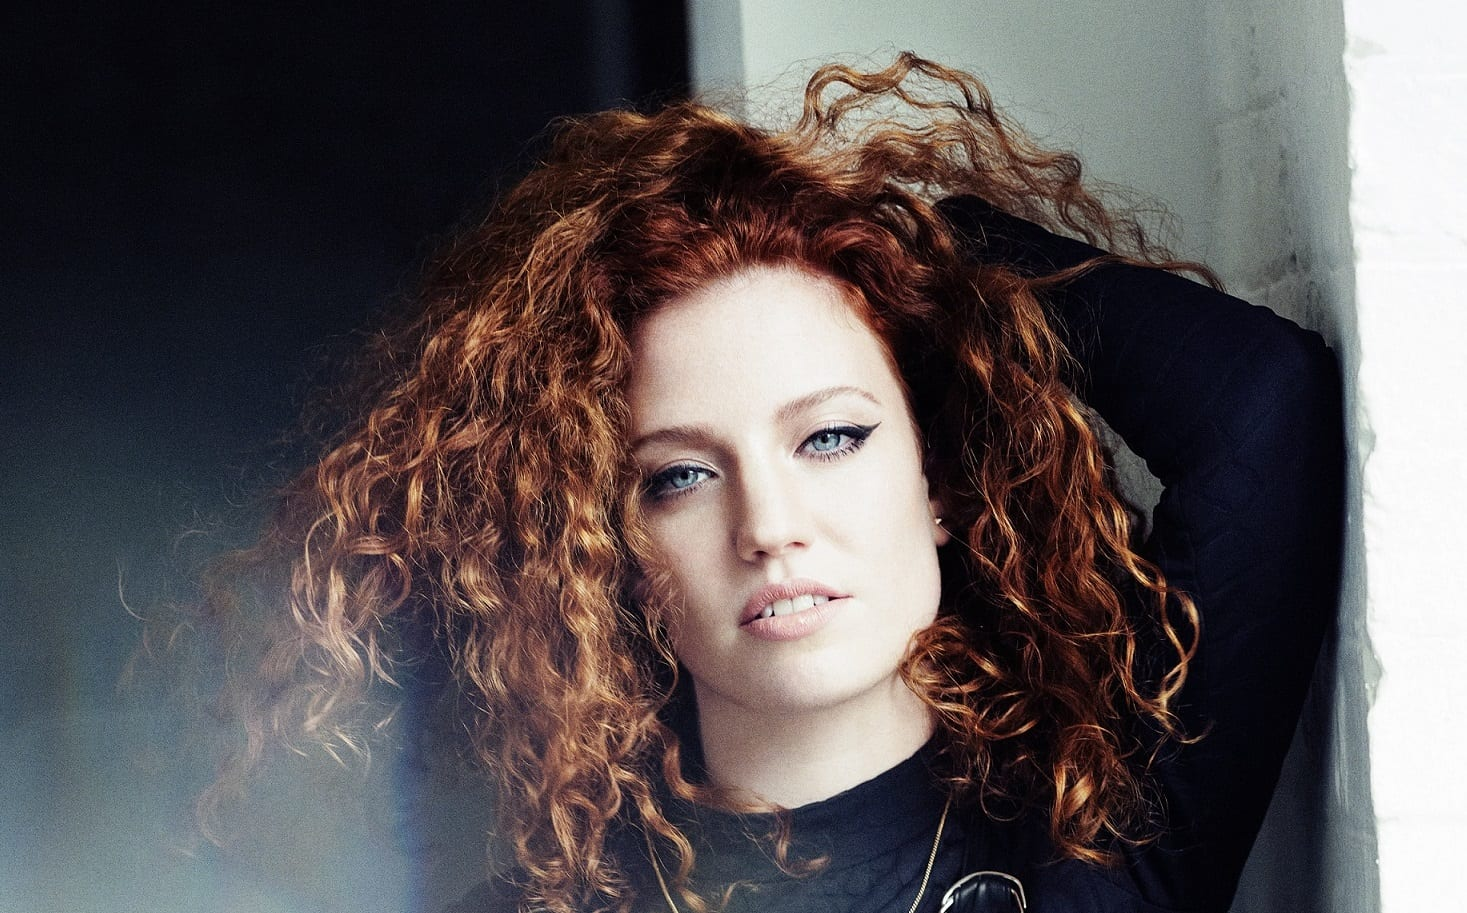 JESS GLYNNE TO PLAY SCARBOROUGH OPEN AIR THEATRE IN 2017